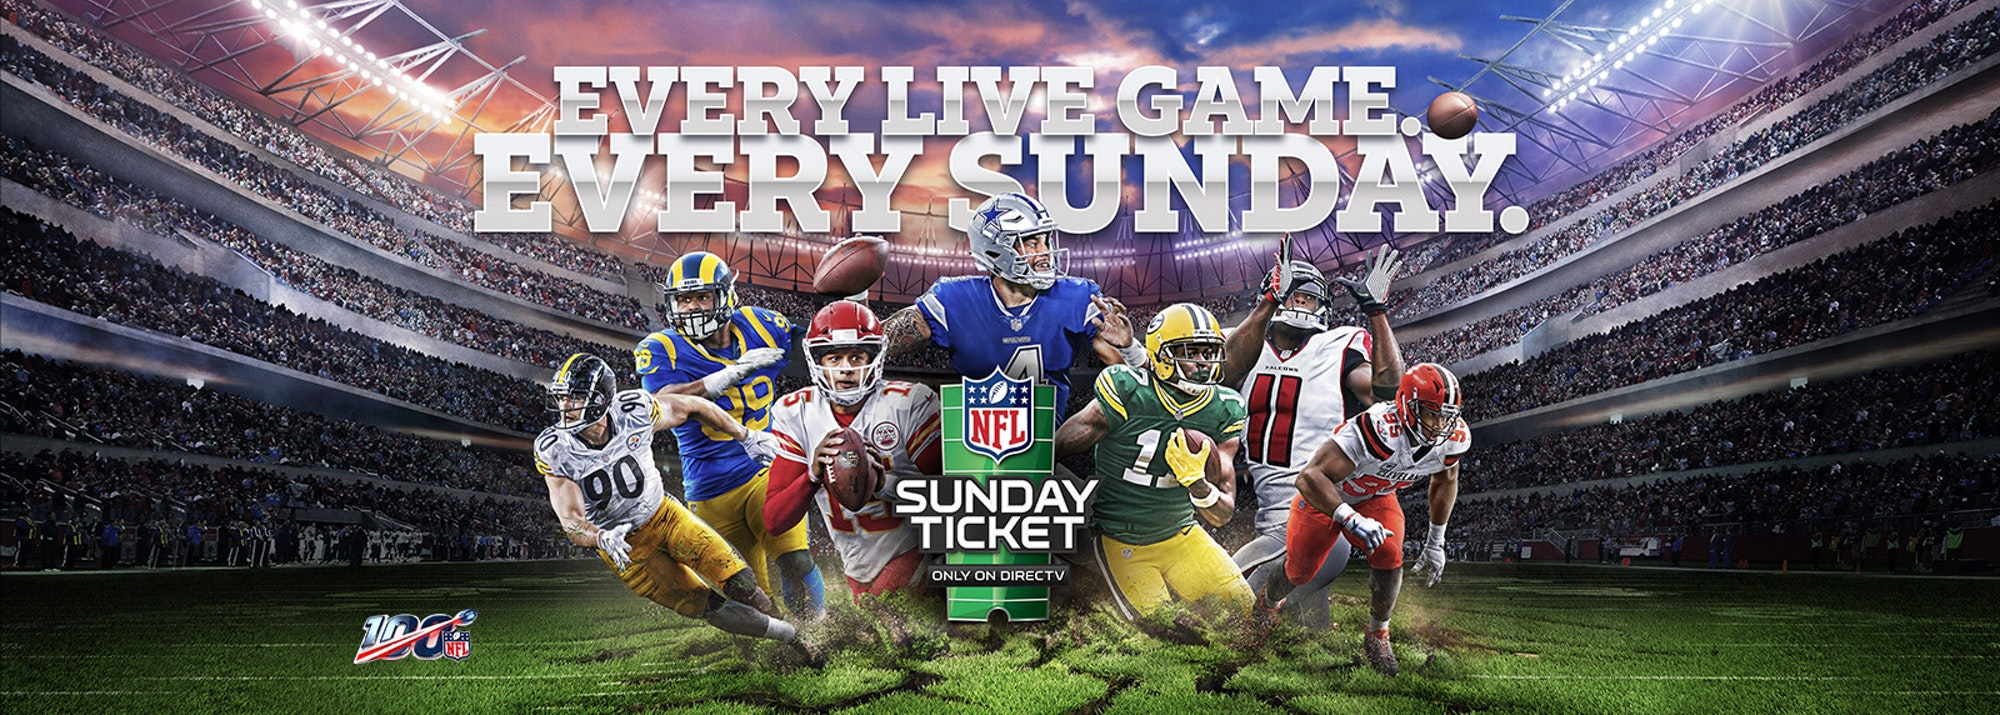 jaguars bengals nfl sunday ticket streaming afc cbs